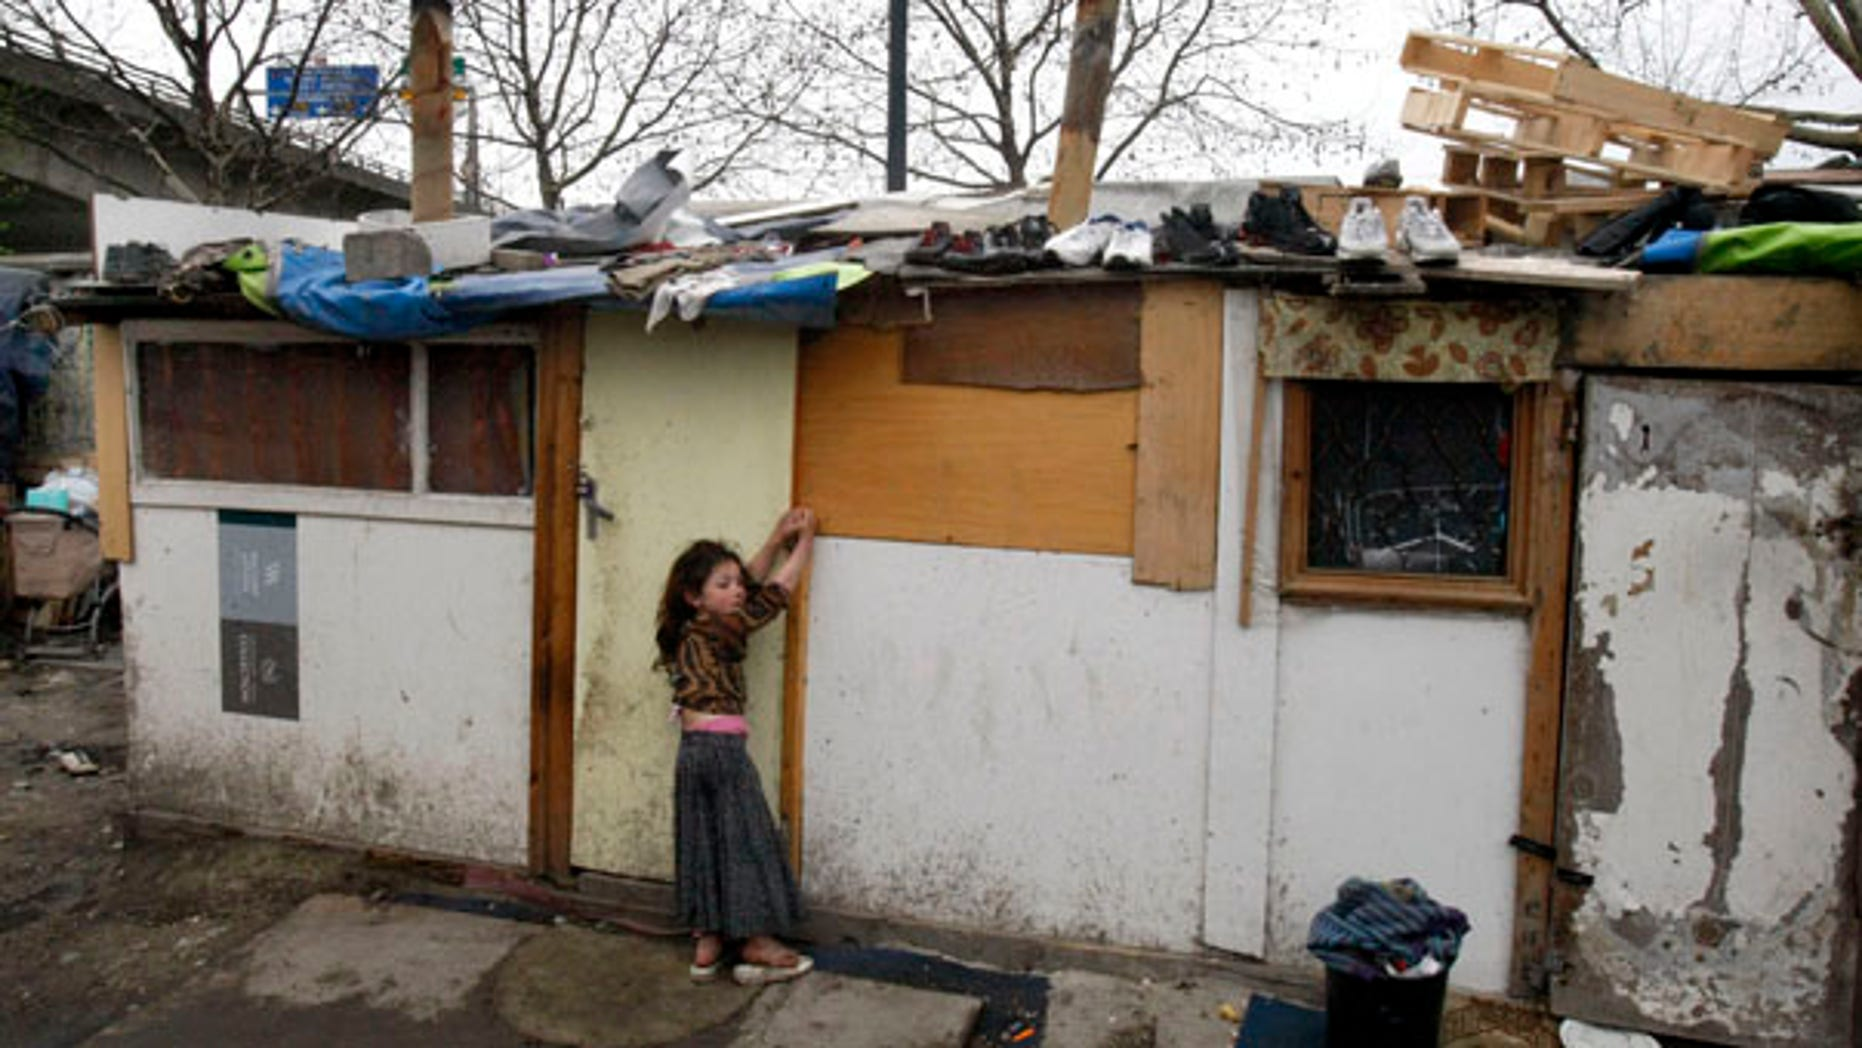 March 26: A young gypsy girl is seen in a makeshift camp in Saint Denis, a northern suburb of Paris.